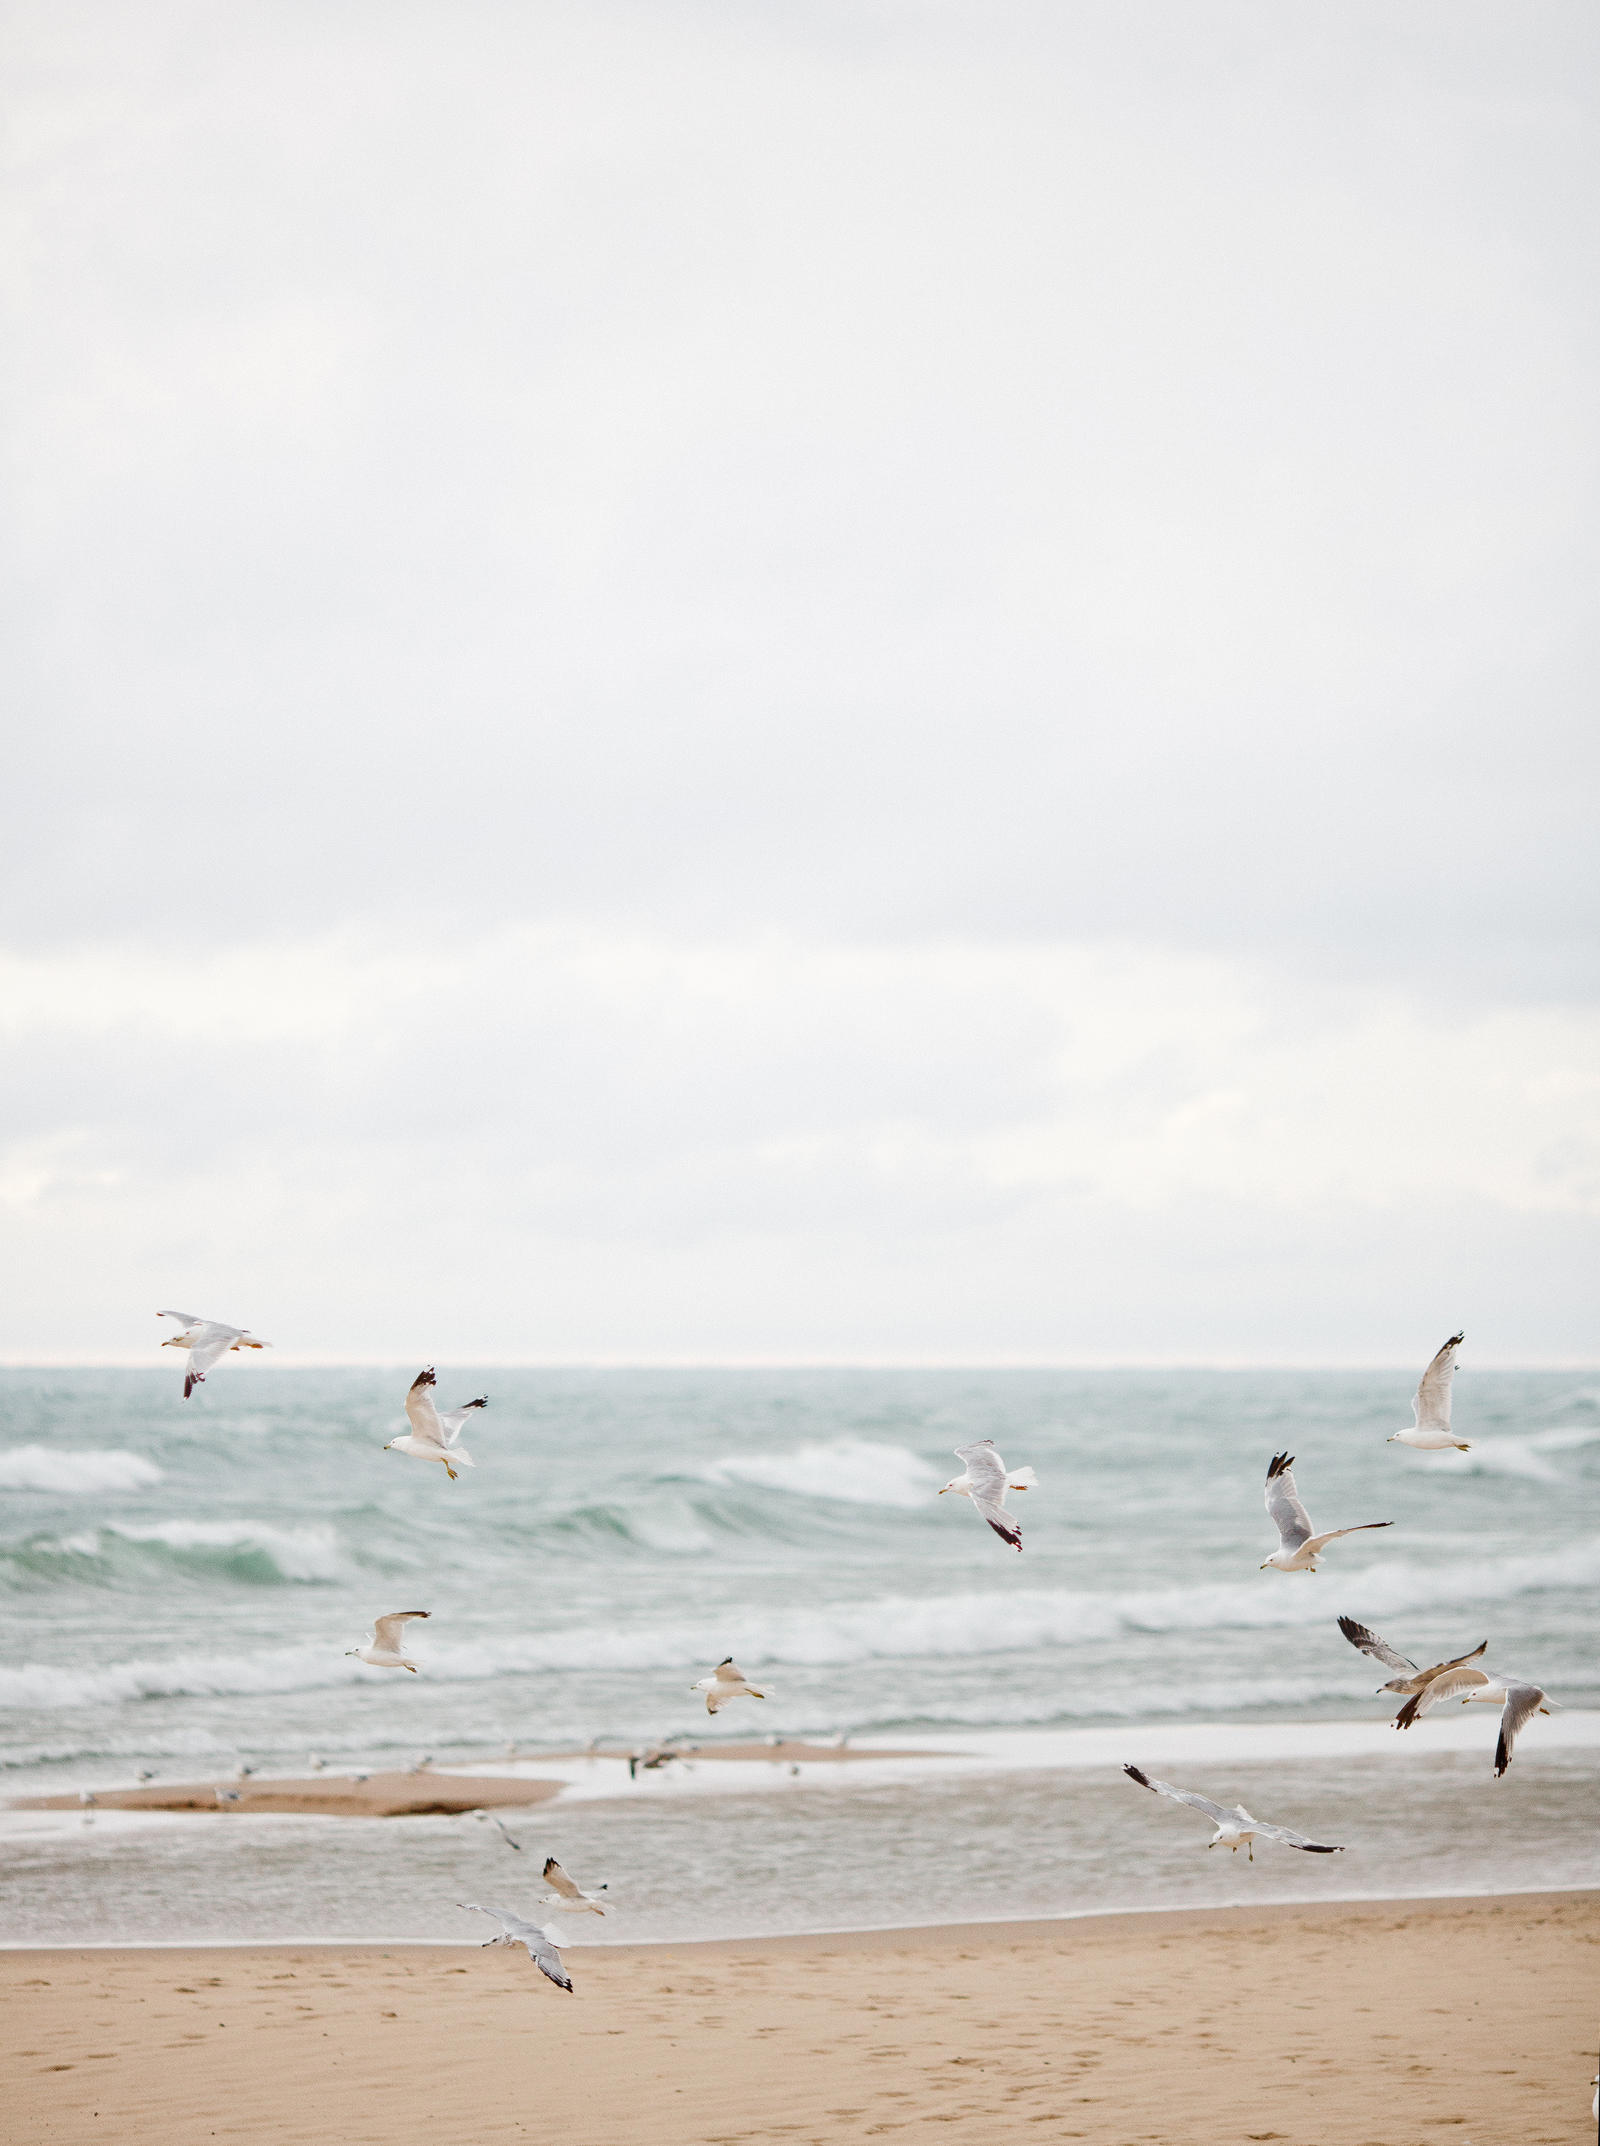 A flock of seagulls fly over the beach.